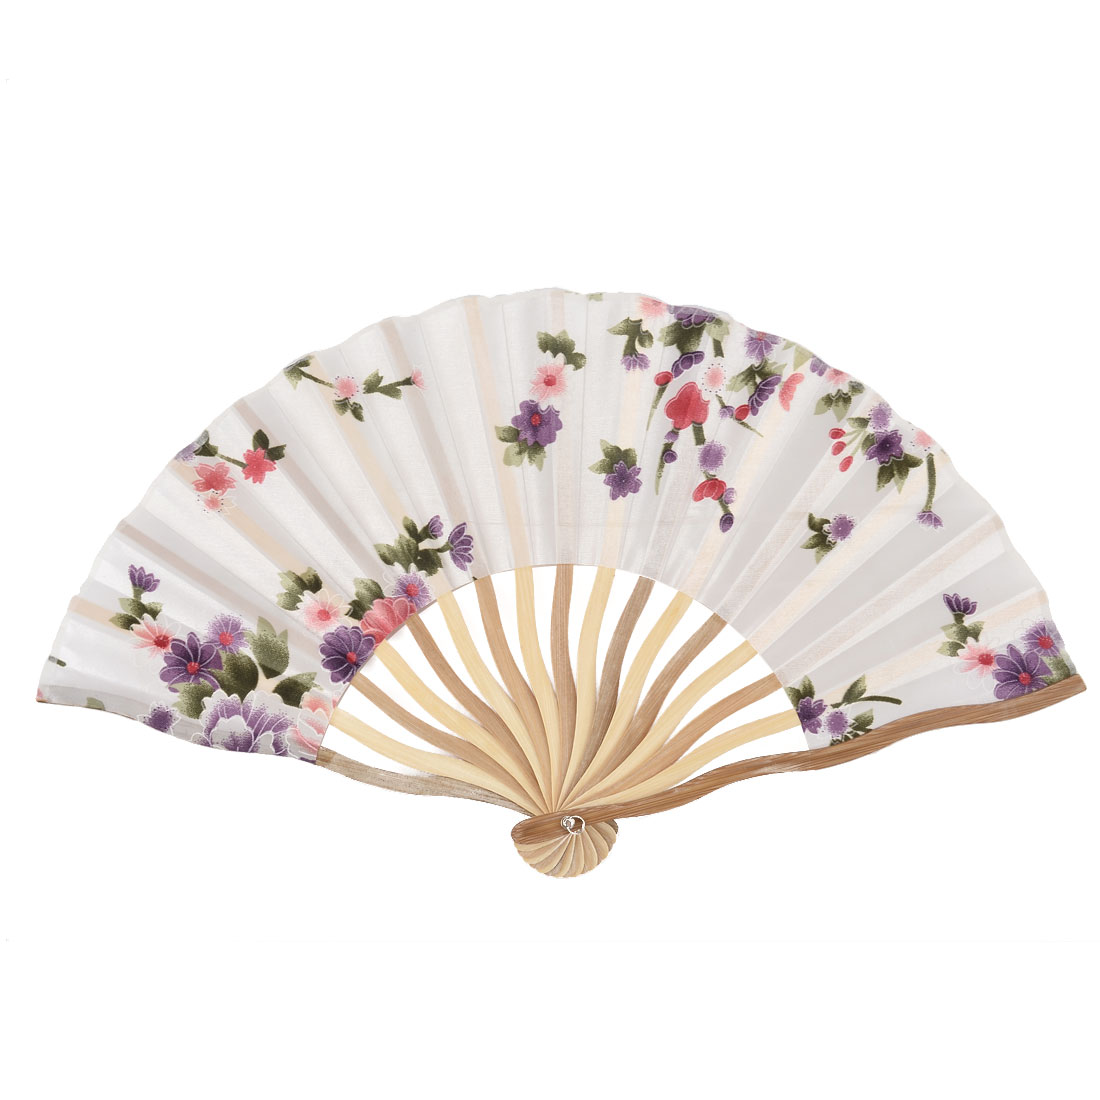 Bamboo Ribs Blossomy Pattern Summer Cool Foldable Hand Fan White w Bag